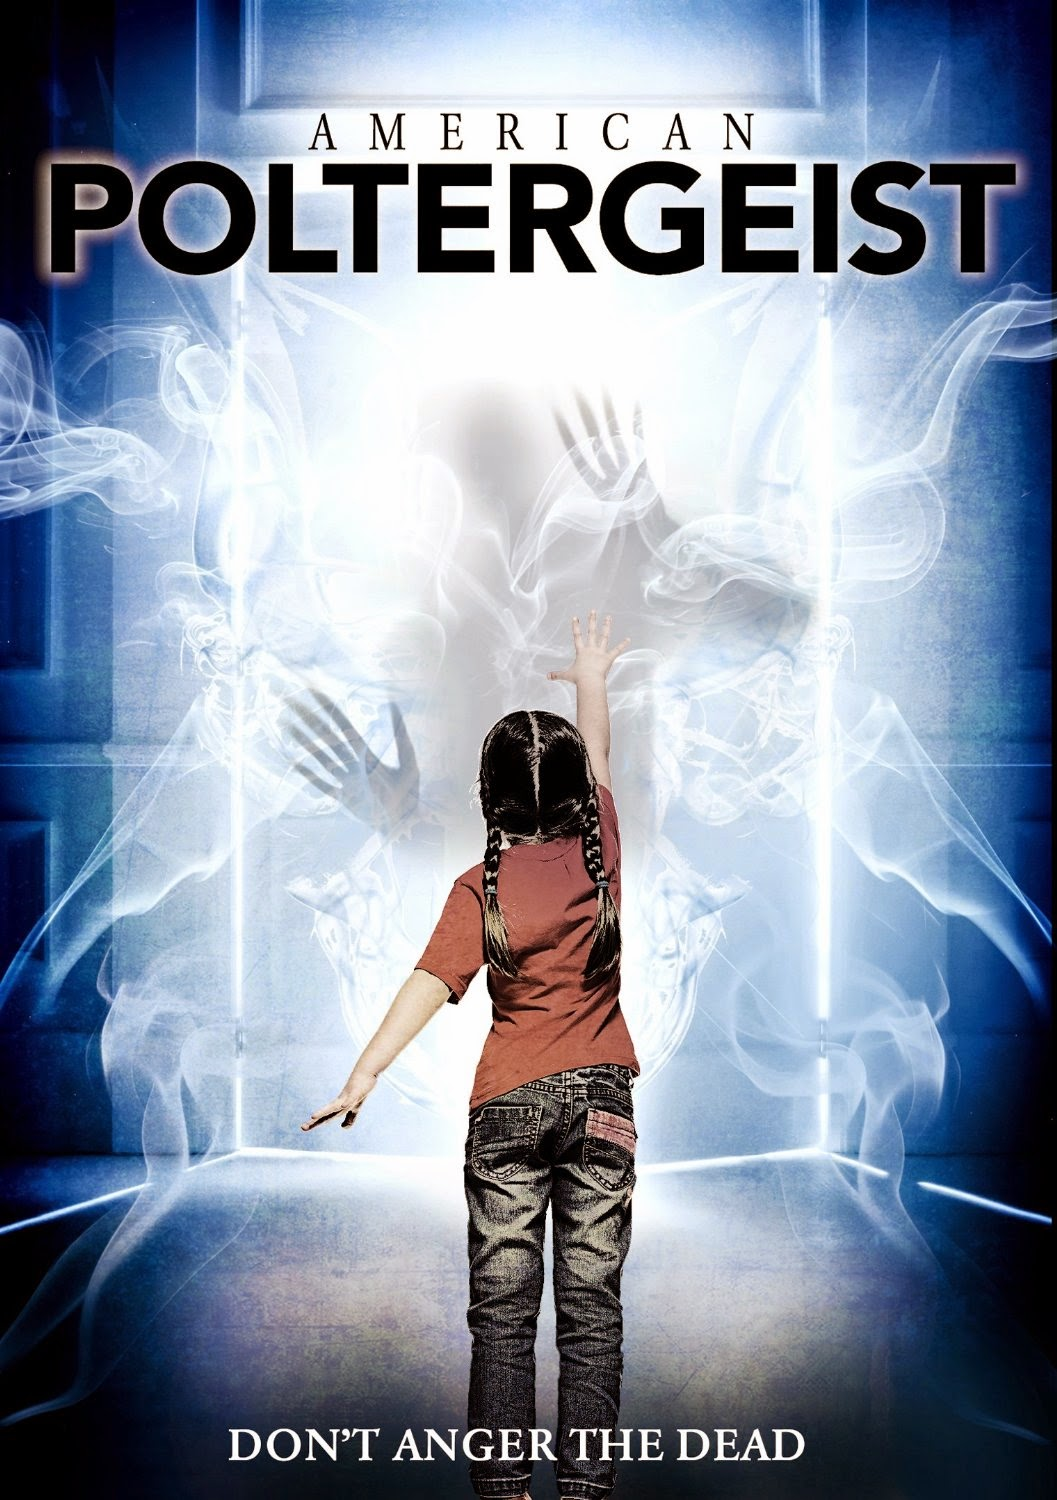 tales from the batcave american poltergeist review